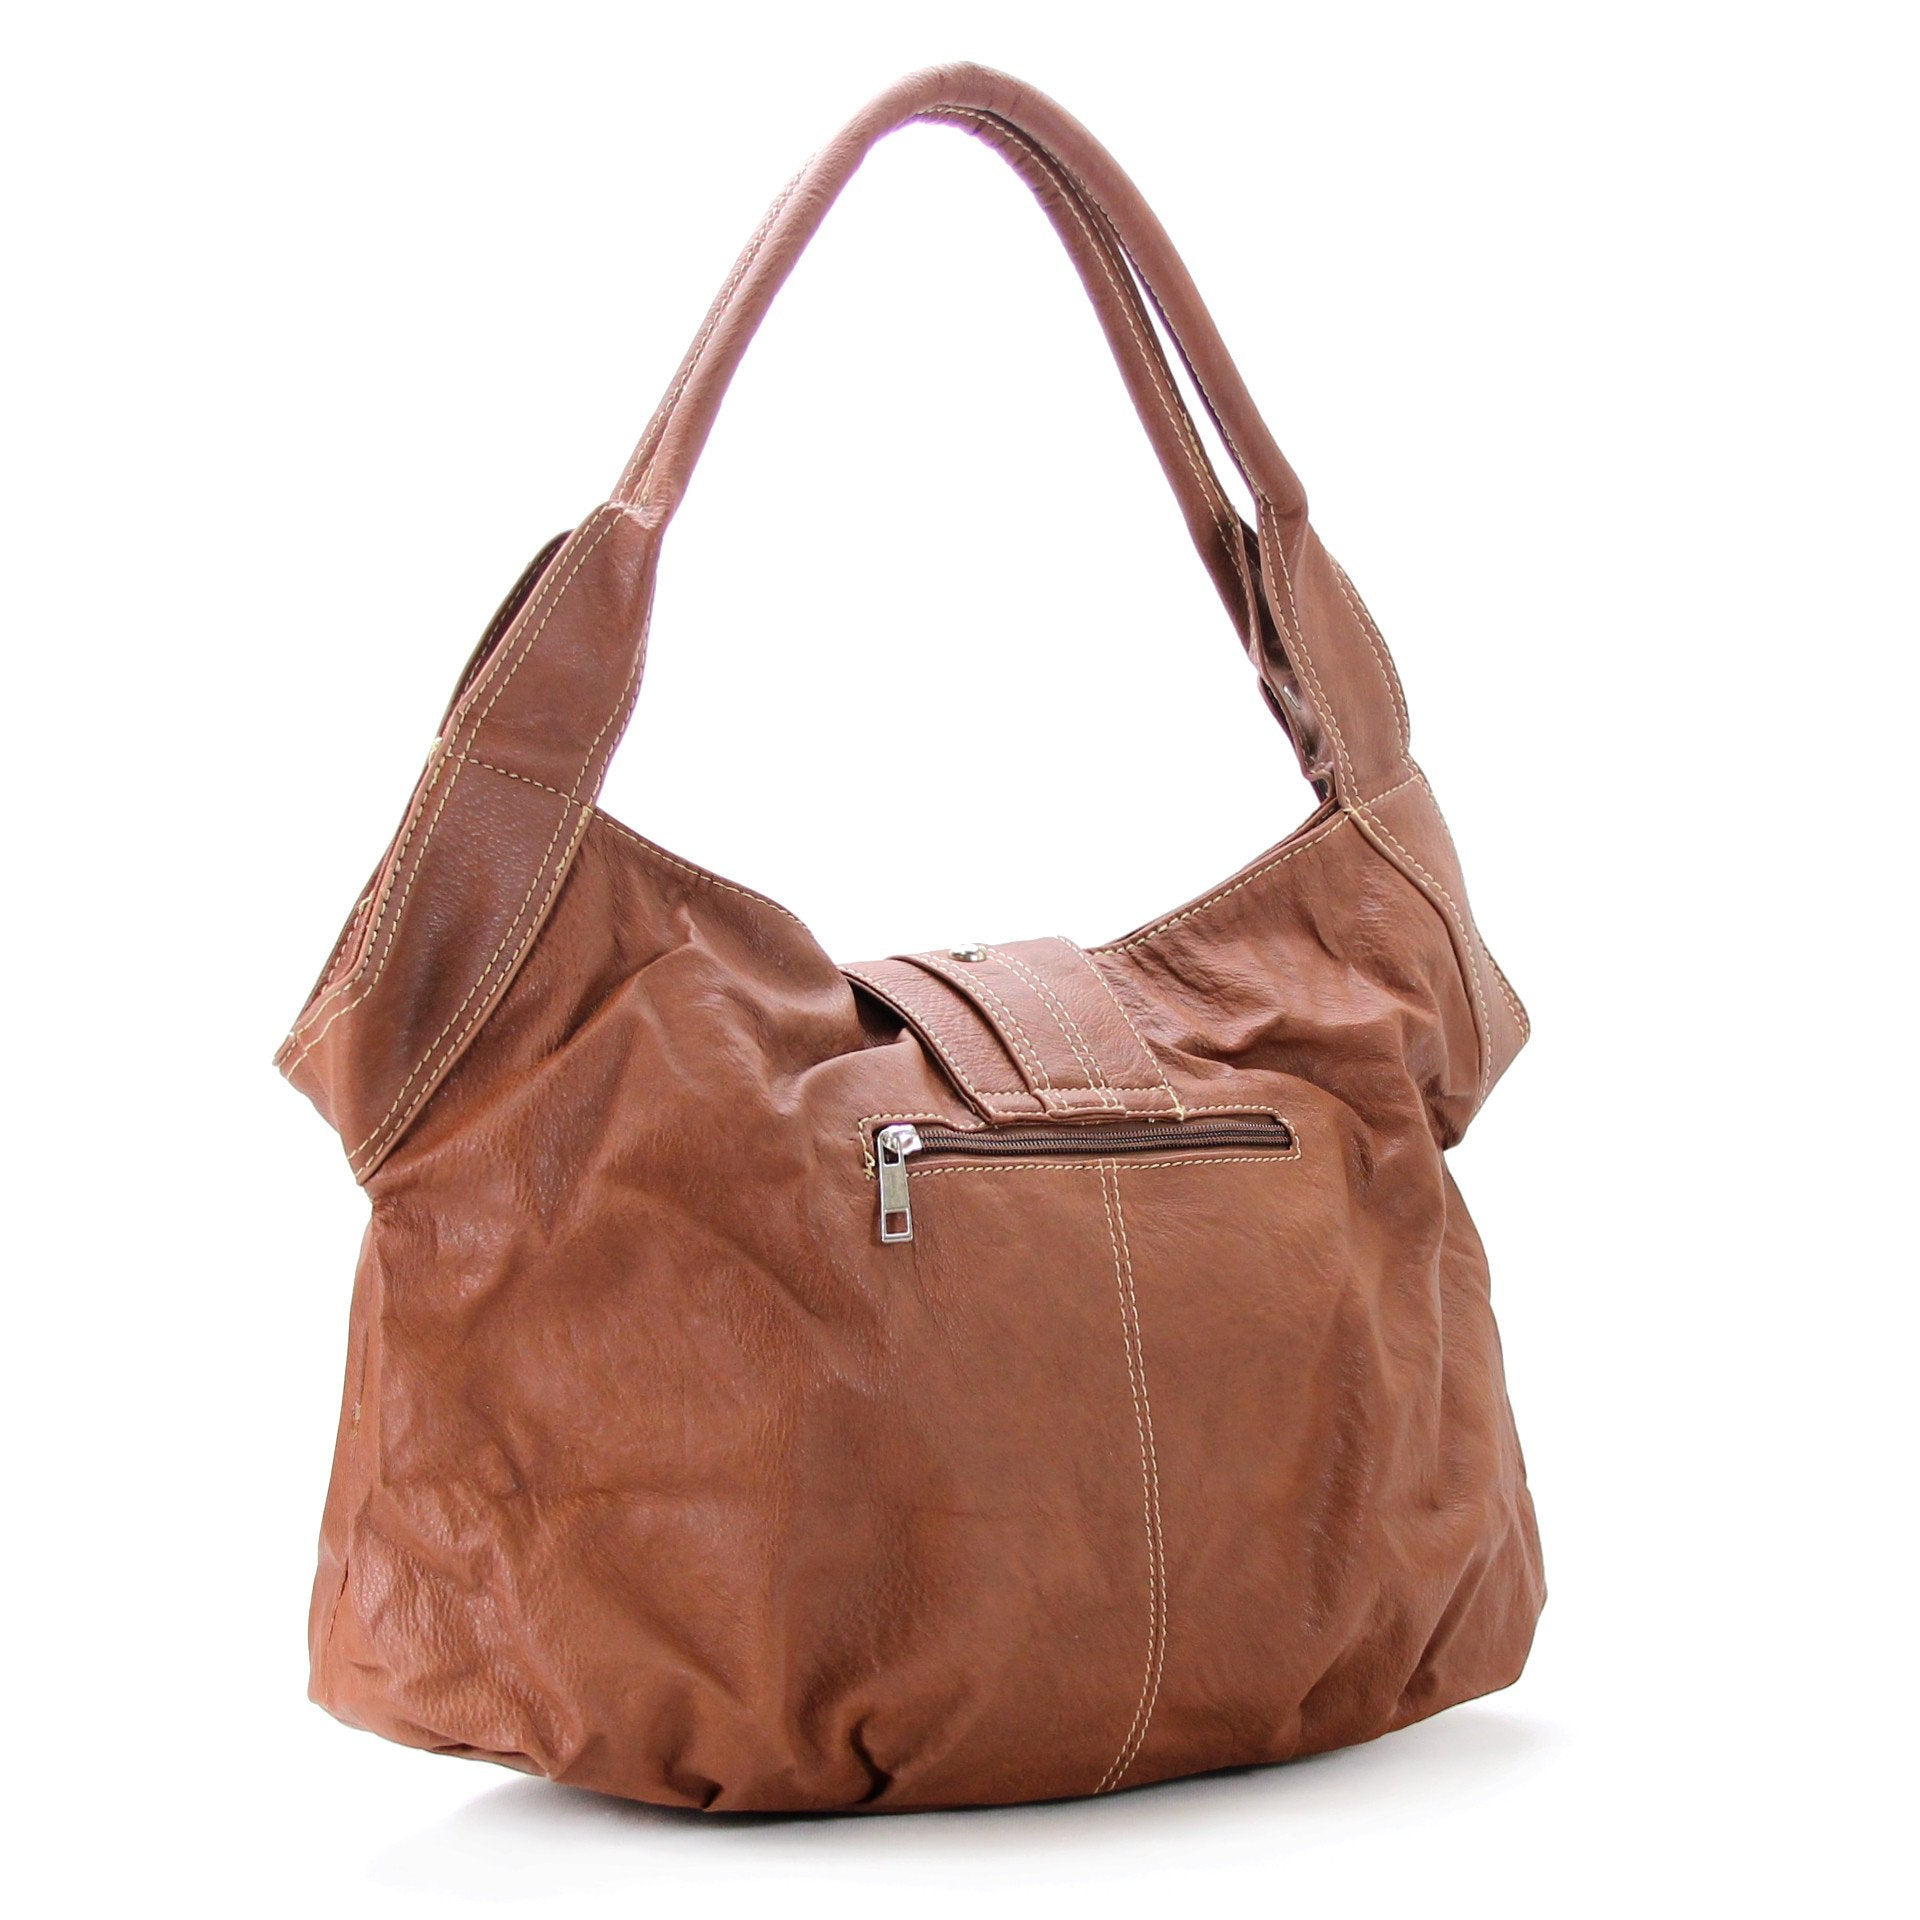 Classic Everyday Fold Over Buckle Purse Handbag Tote Bag - Brown - Pop Fashion